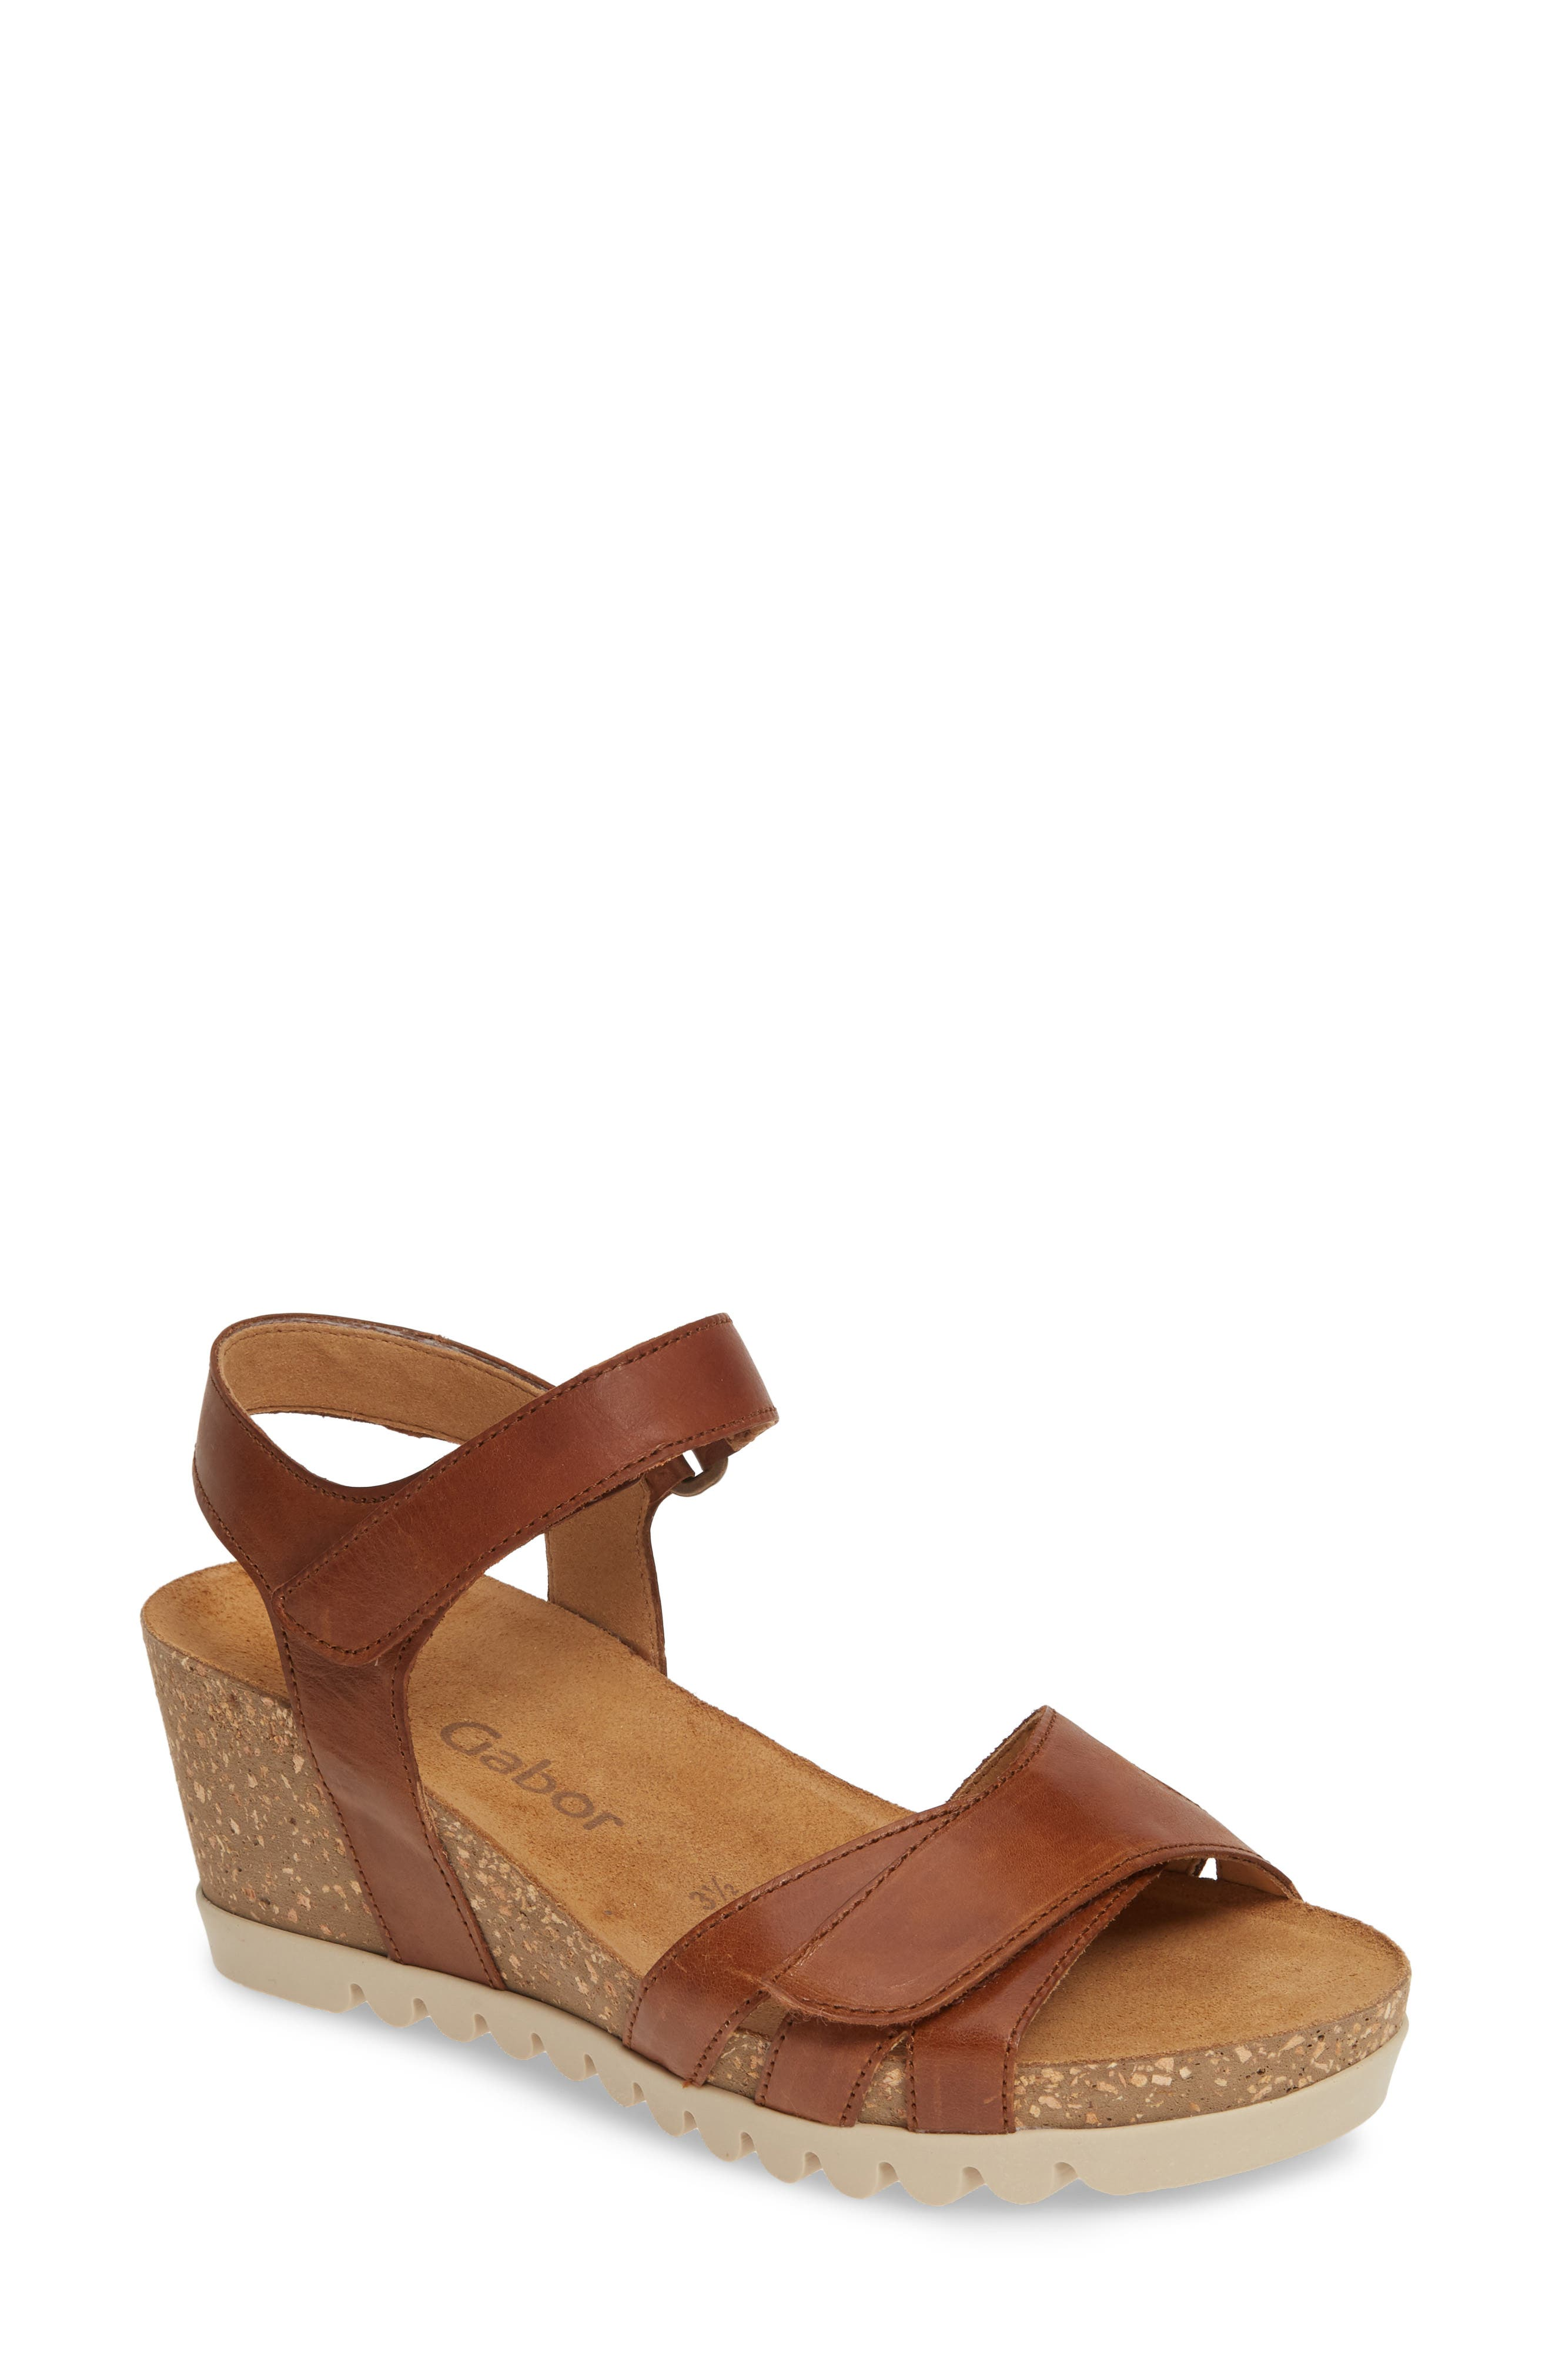 A cork wedge and platform bring summery height to a strappy sandal fitted with a cushy, arch-supporting footbed. Style Name: Gabor Wedge Sandal (Women). Style Number: 5822448. Available in stores.